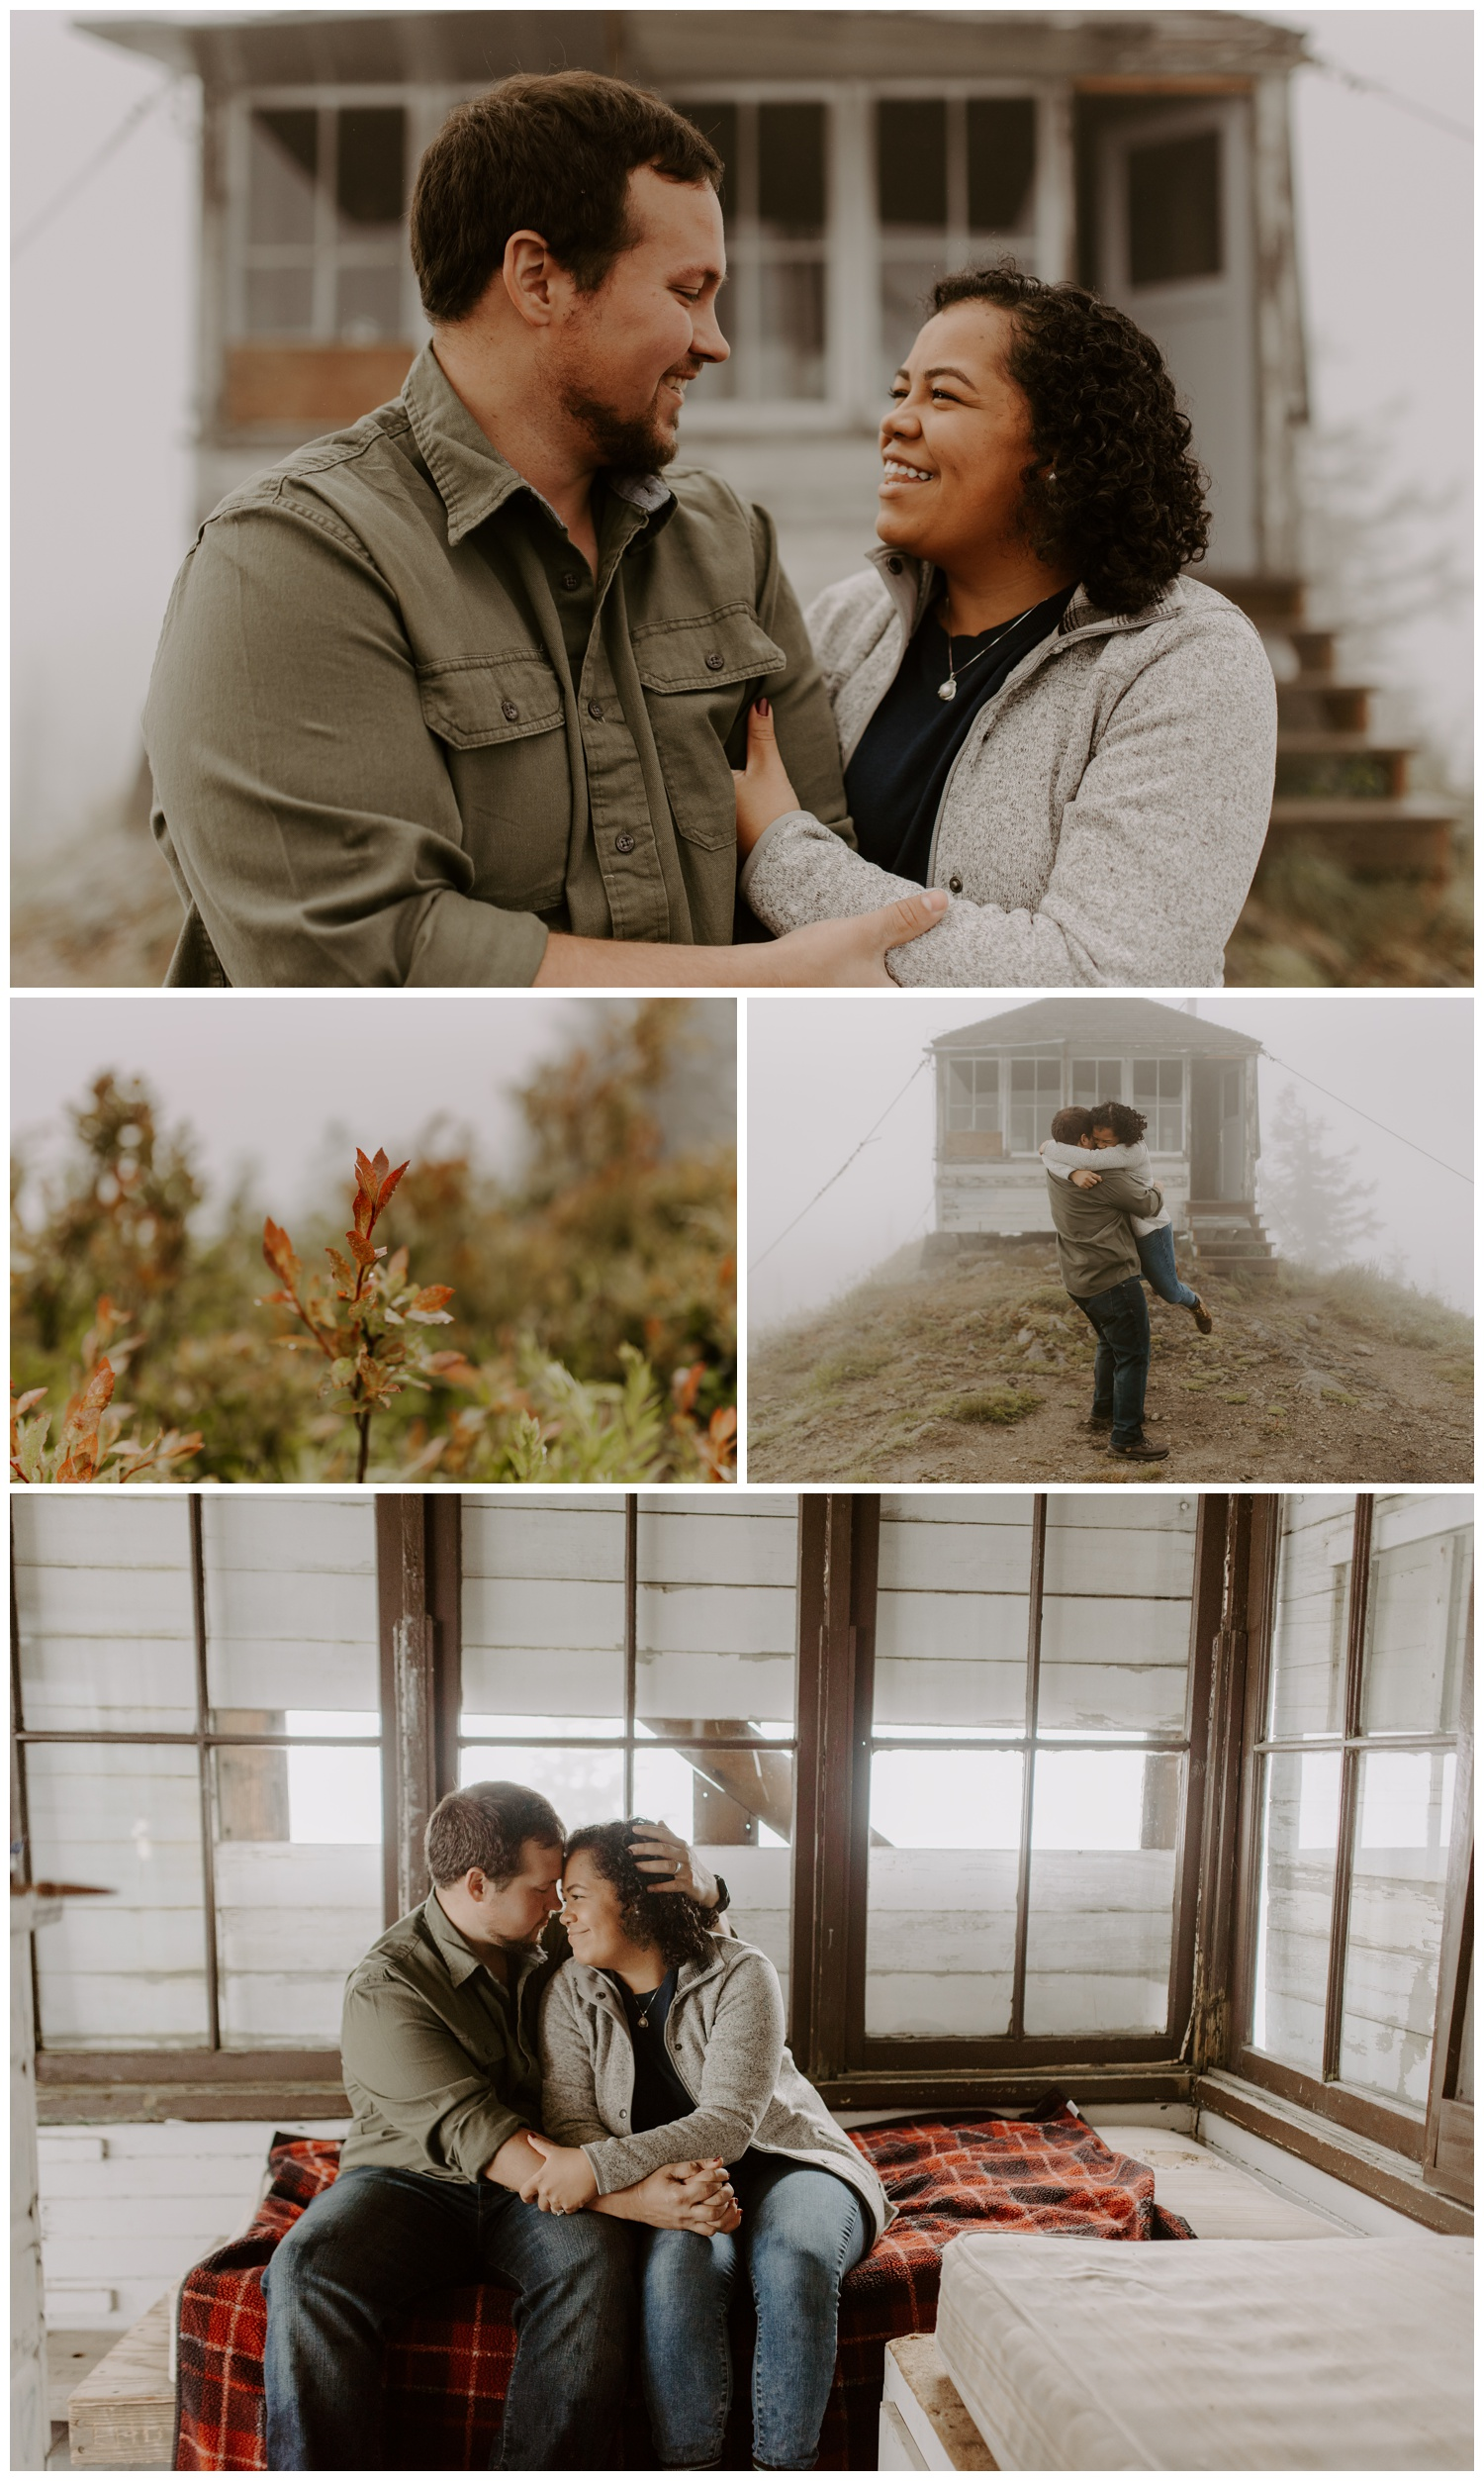 Washington Fire Lookout Engagements Jessica Heron Images 012.JPG